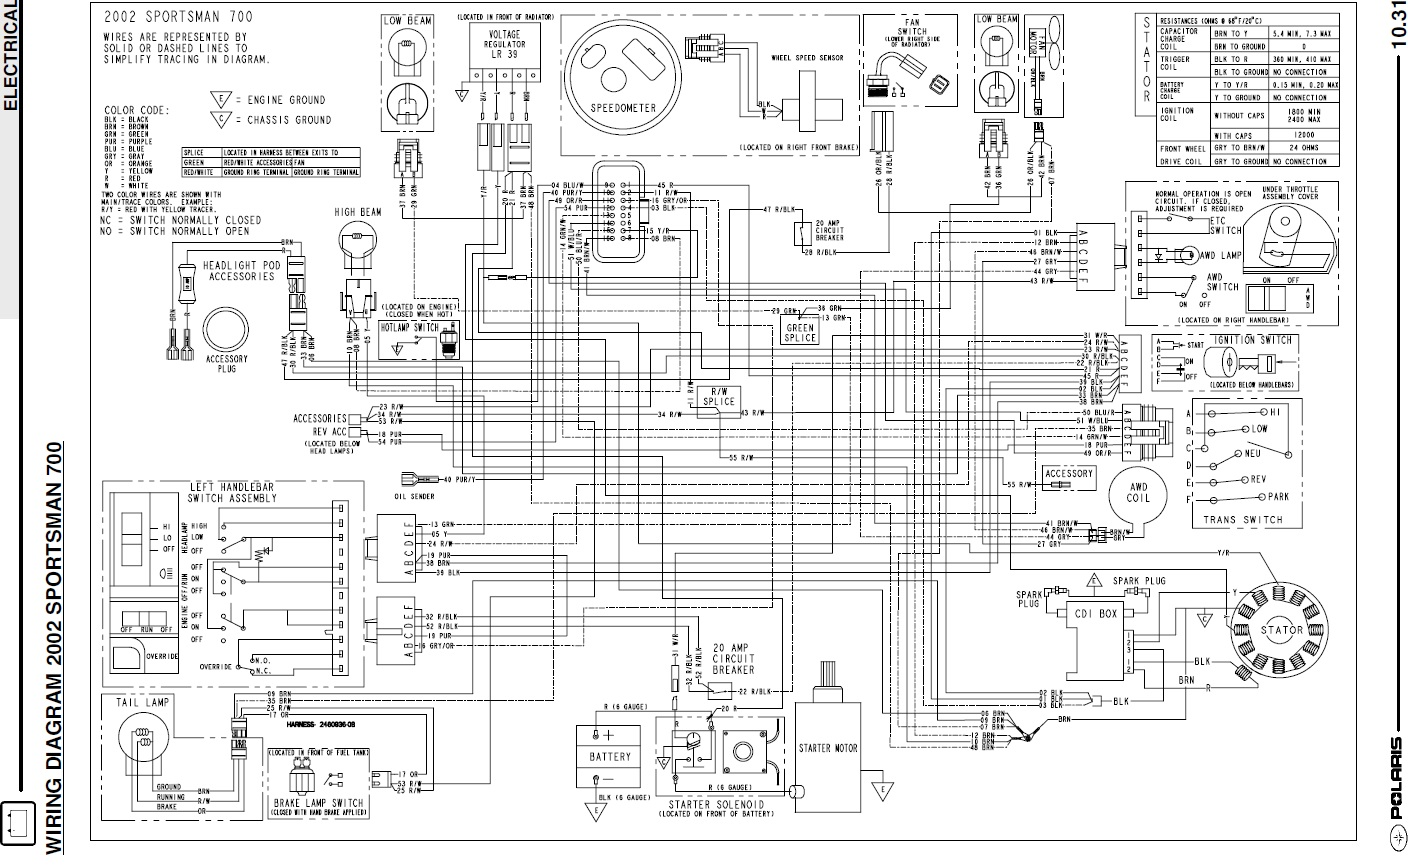 25374d1432945183 04 sportsman 700 no spark wiring diag 700 polaris rzr wiring diagram polaris solenoid wiring diagram \u2022 free 2000 polaris scrambler 500 wiring diagram at creativeand.co